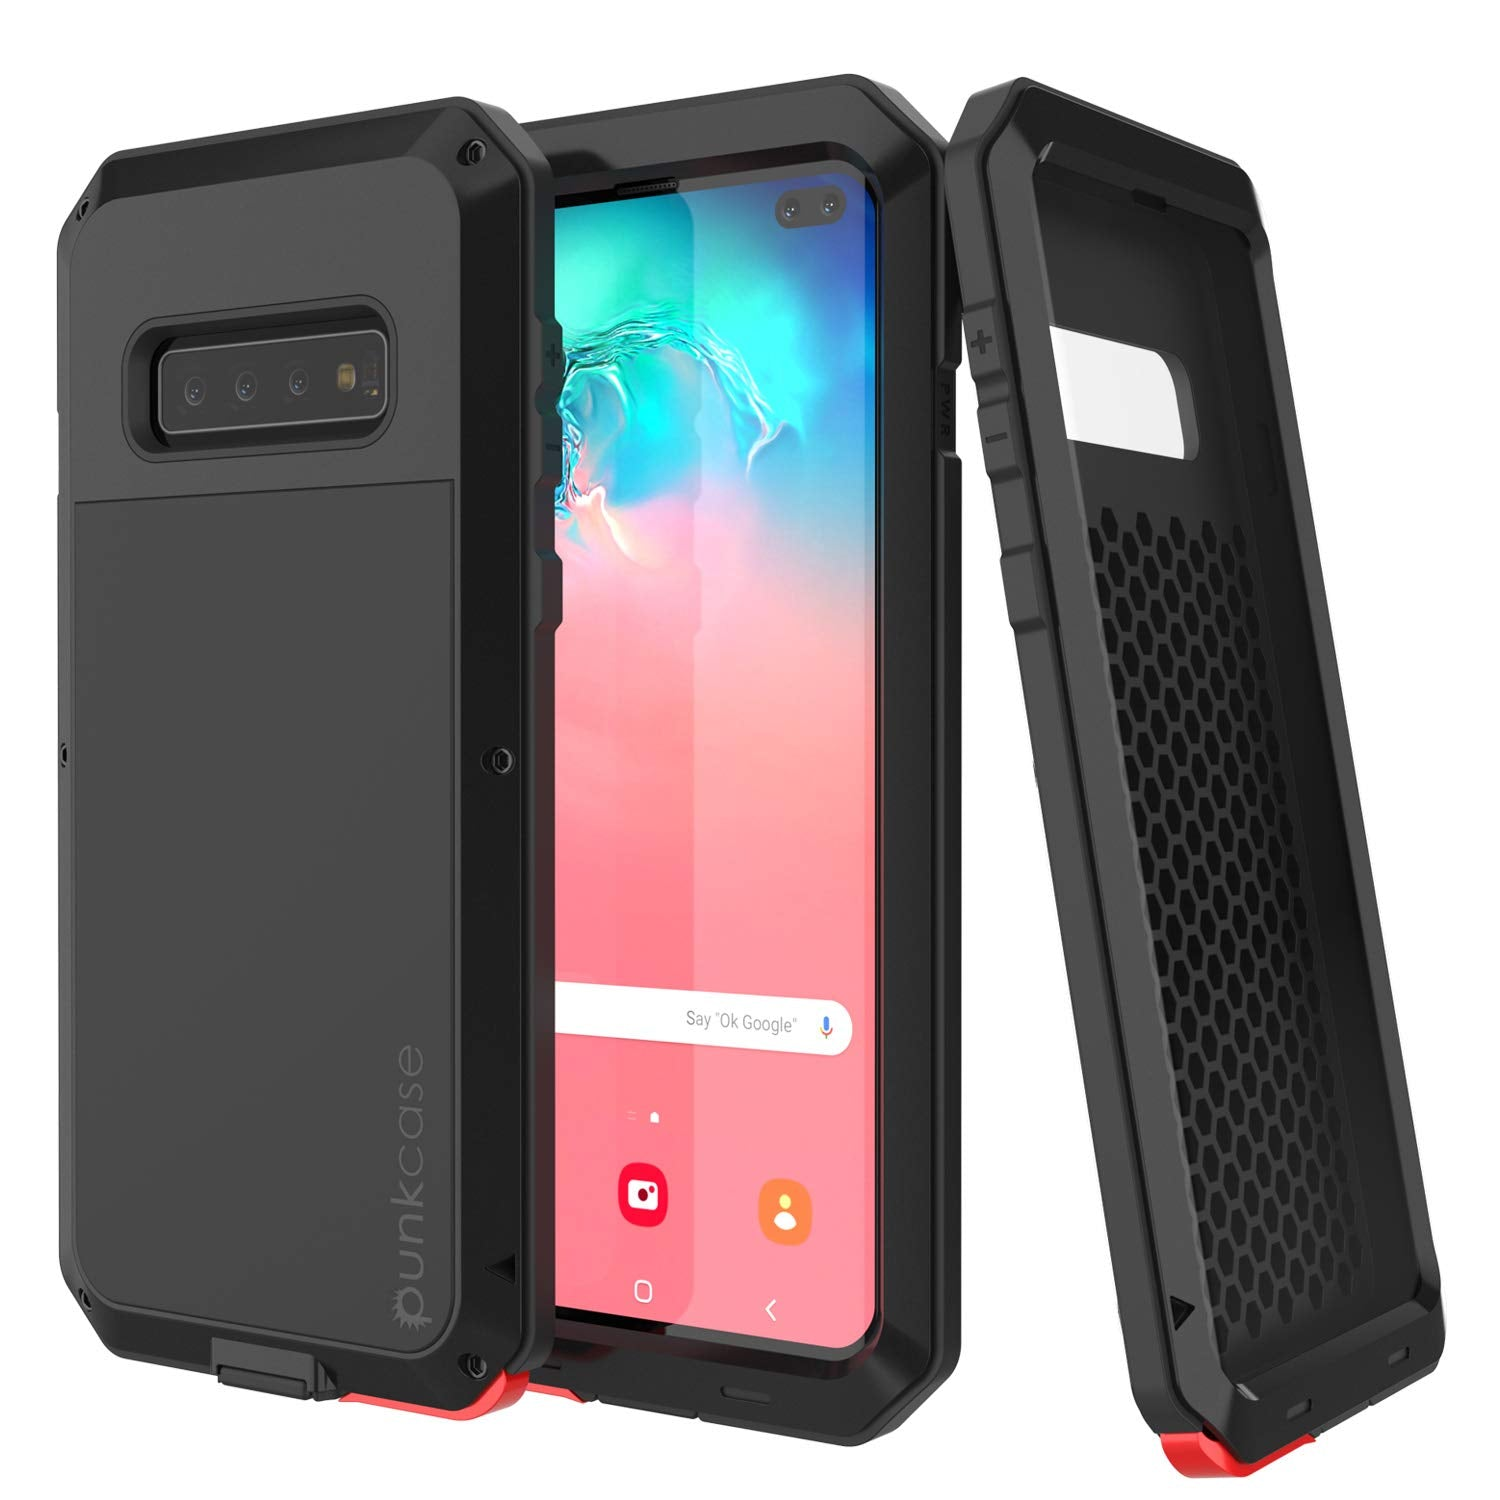 Galaxy S10+ Plus Metal Case, Heavy Duty Military Grade Rugged Armor Cover [Black]